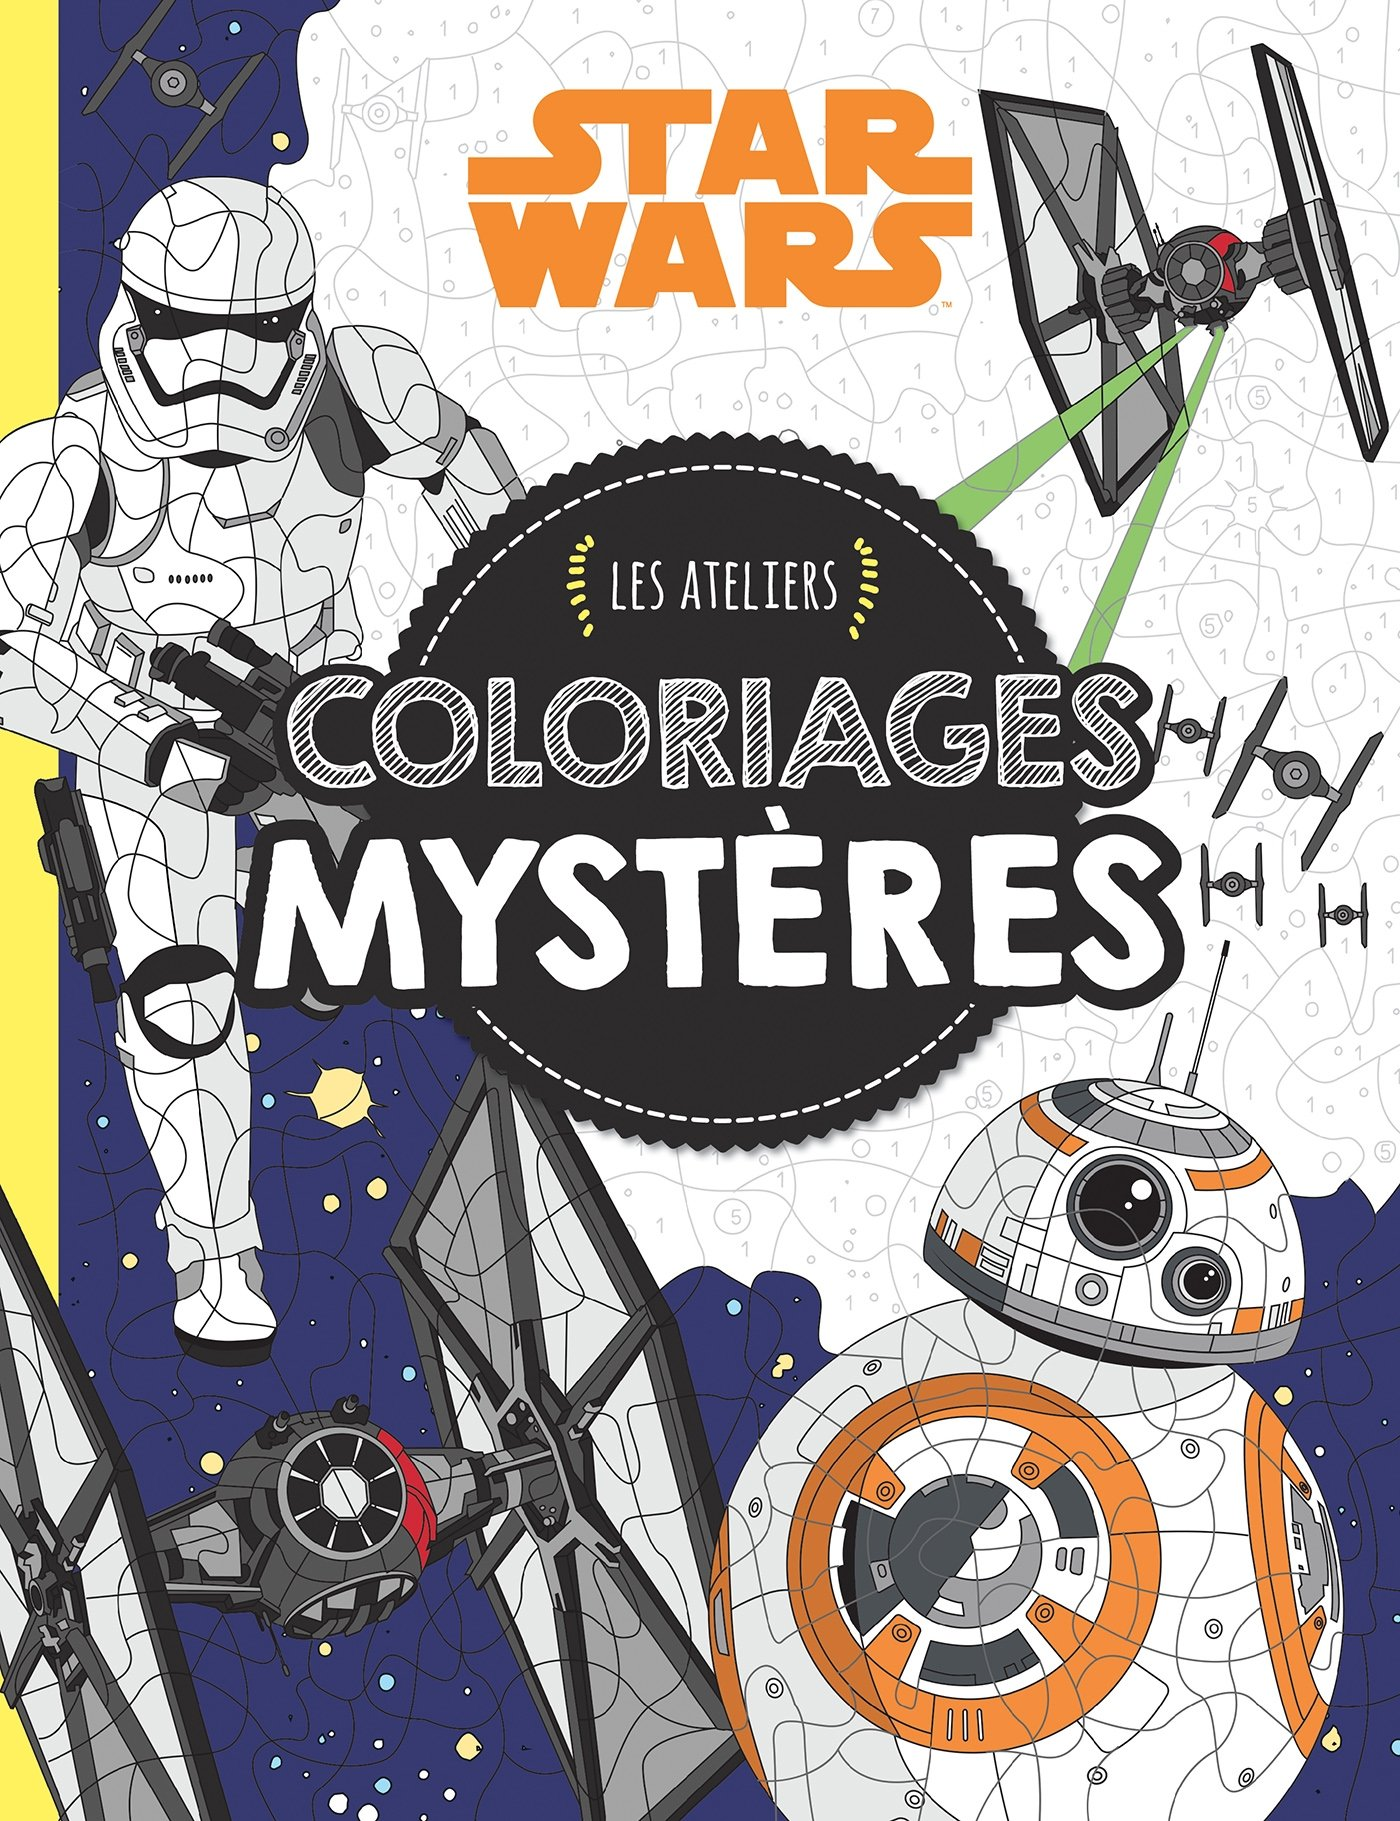 Rey Star Wars Vii Les Ateliers Star Wars Coloriages Mysteres Hjd Ateliers French Edition 9782019496548 Amazon Com Books